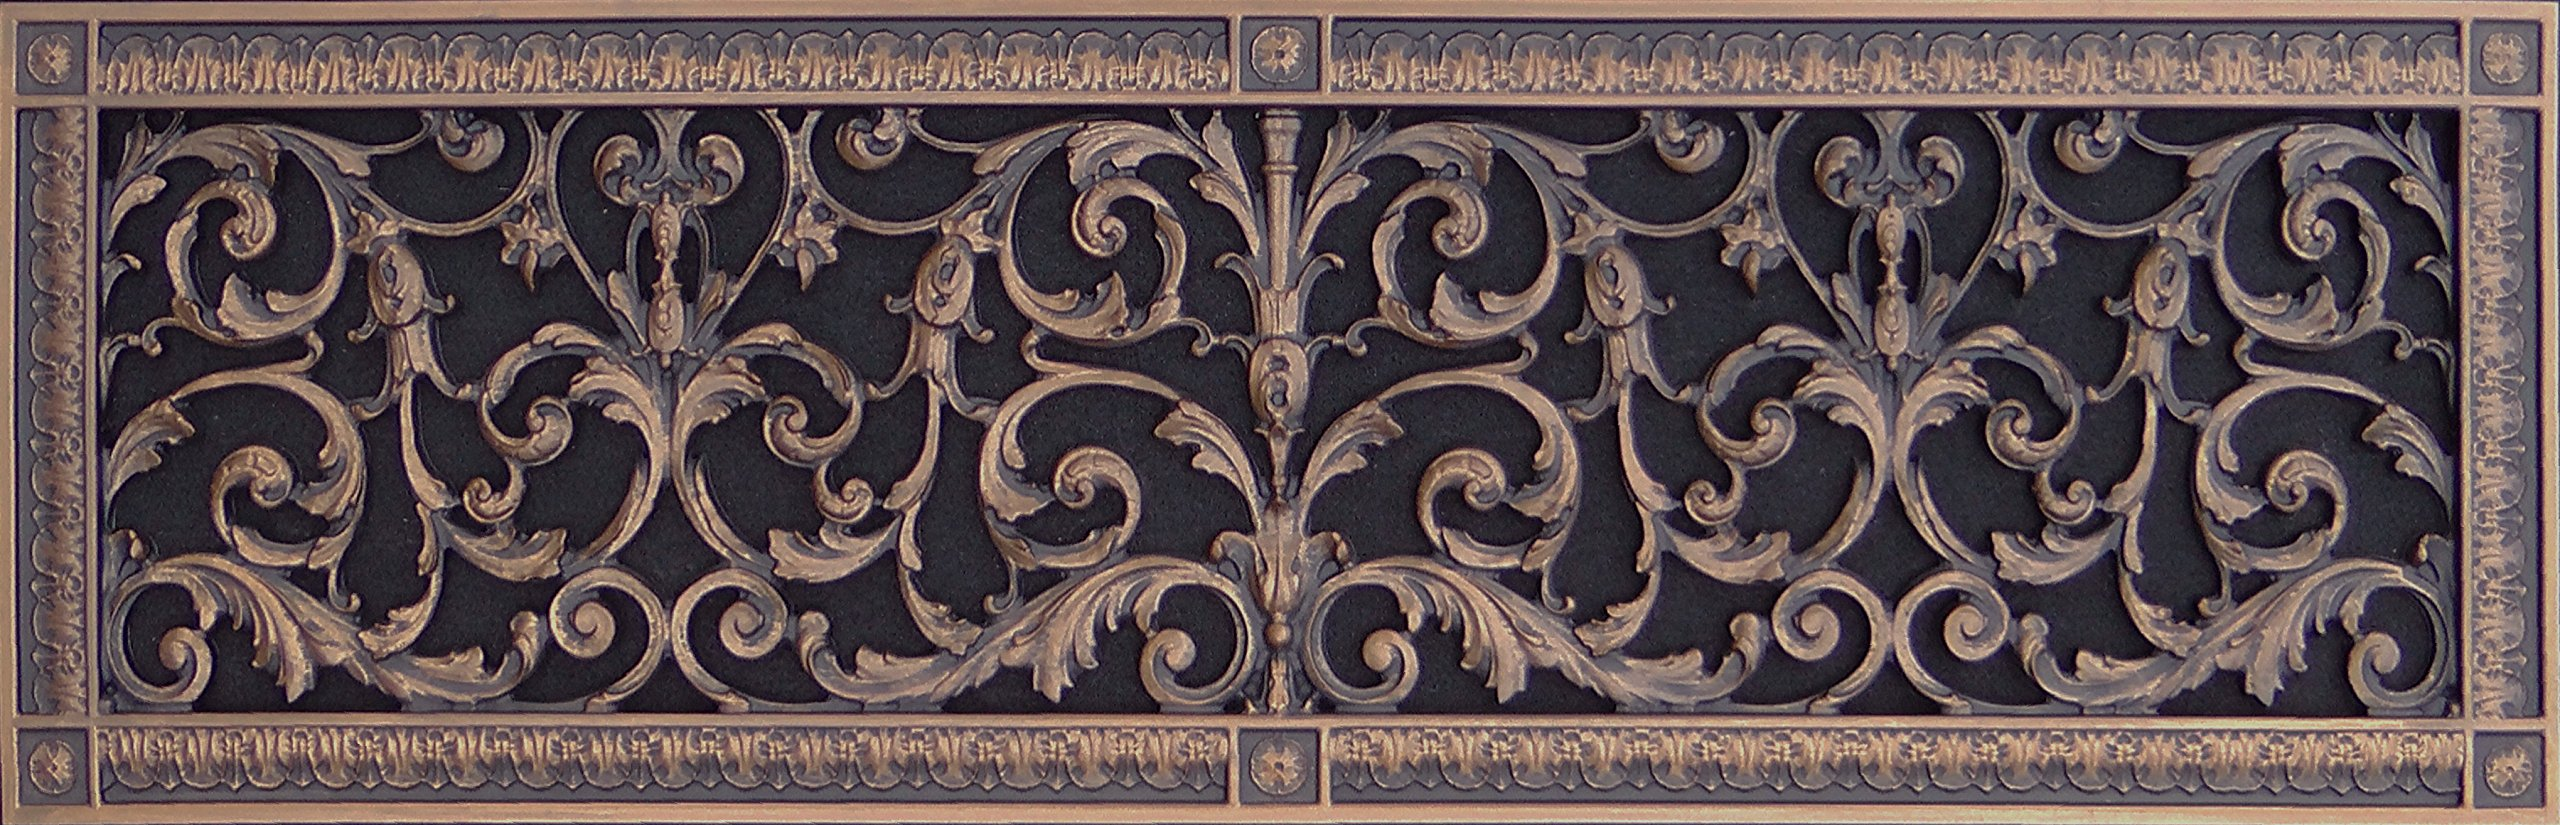 Decorative Vent Cover, Grille or Register, made of resin in Louis XIV style fits over a 8''x24'' duct opening. Total size is 10''x26'', for wall & ceiling installation only. Not for floors (Rubbed Bronze)